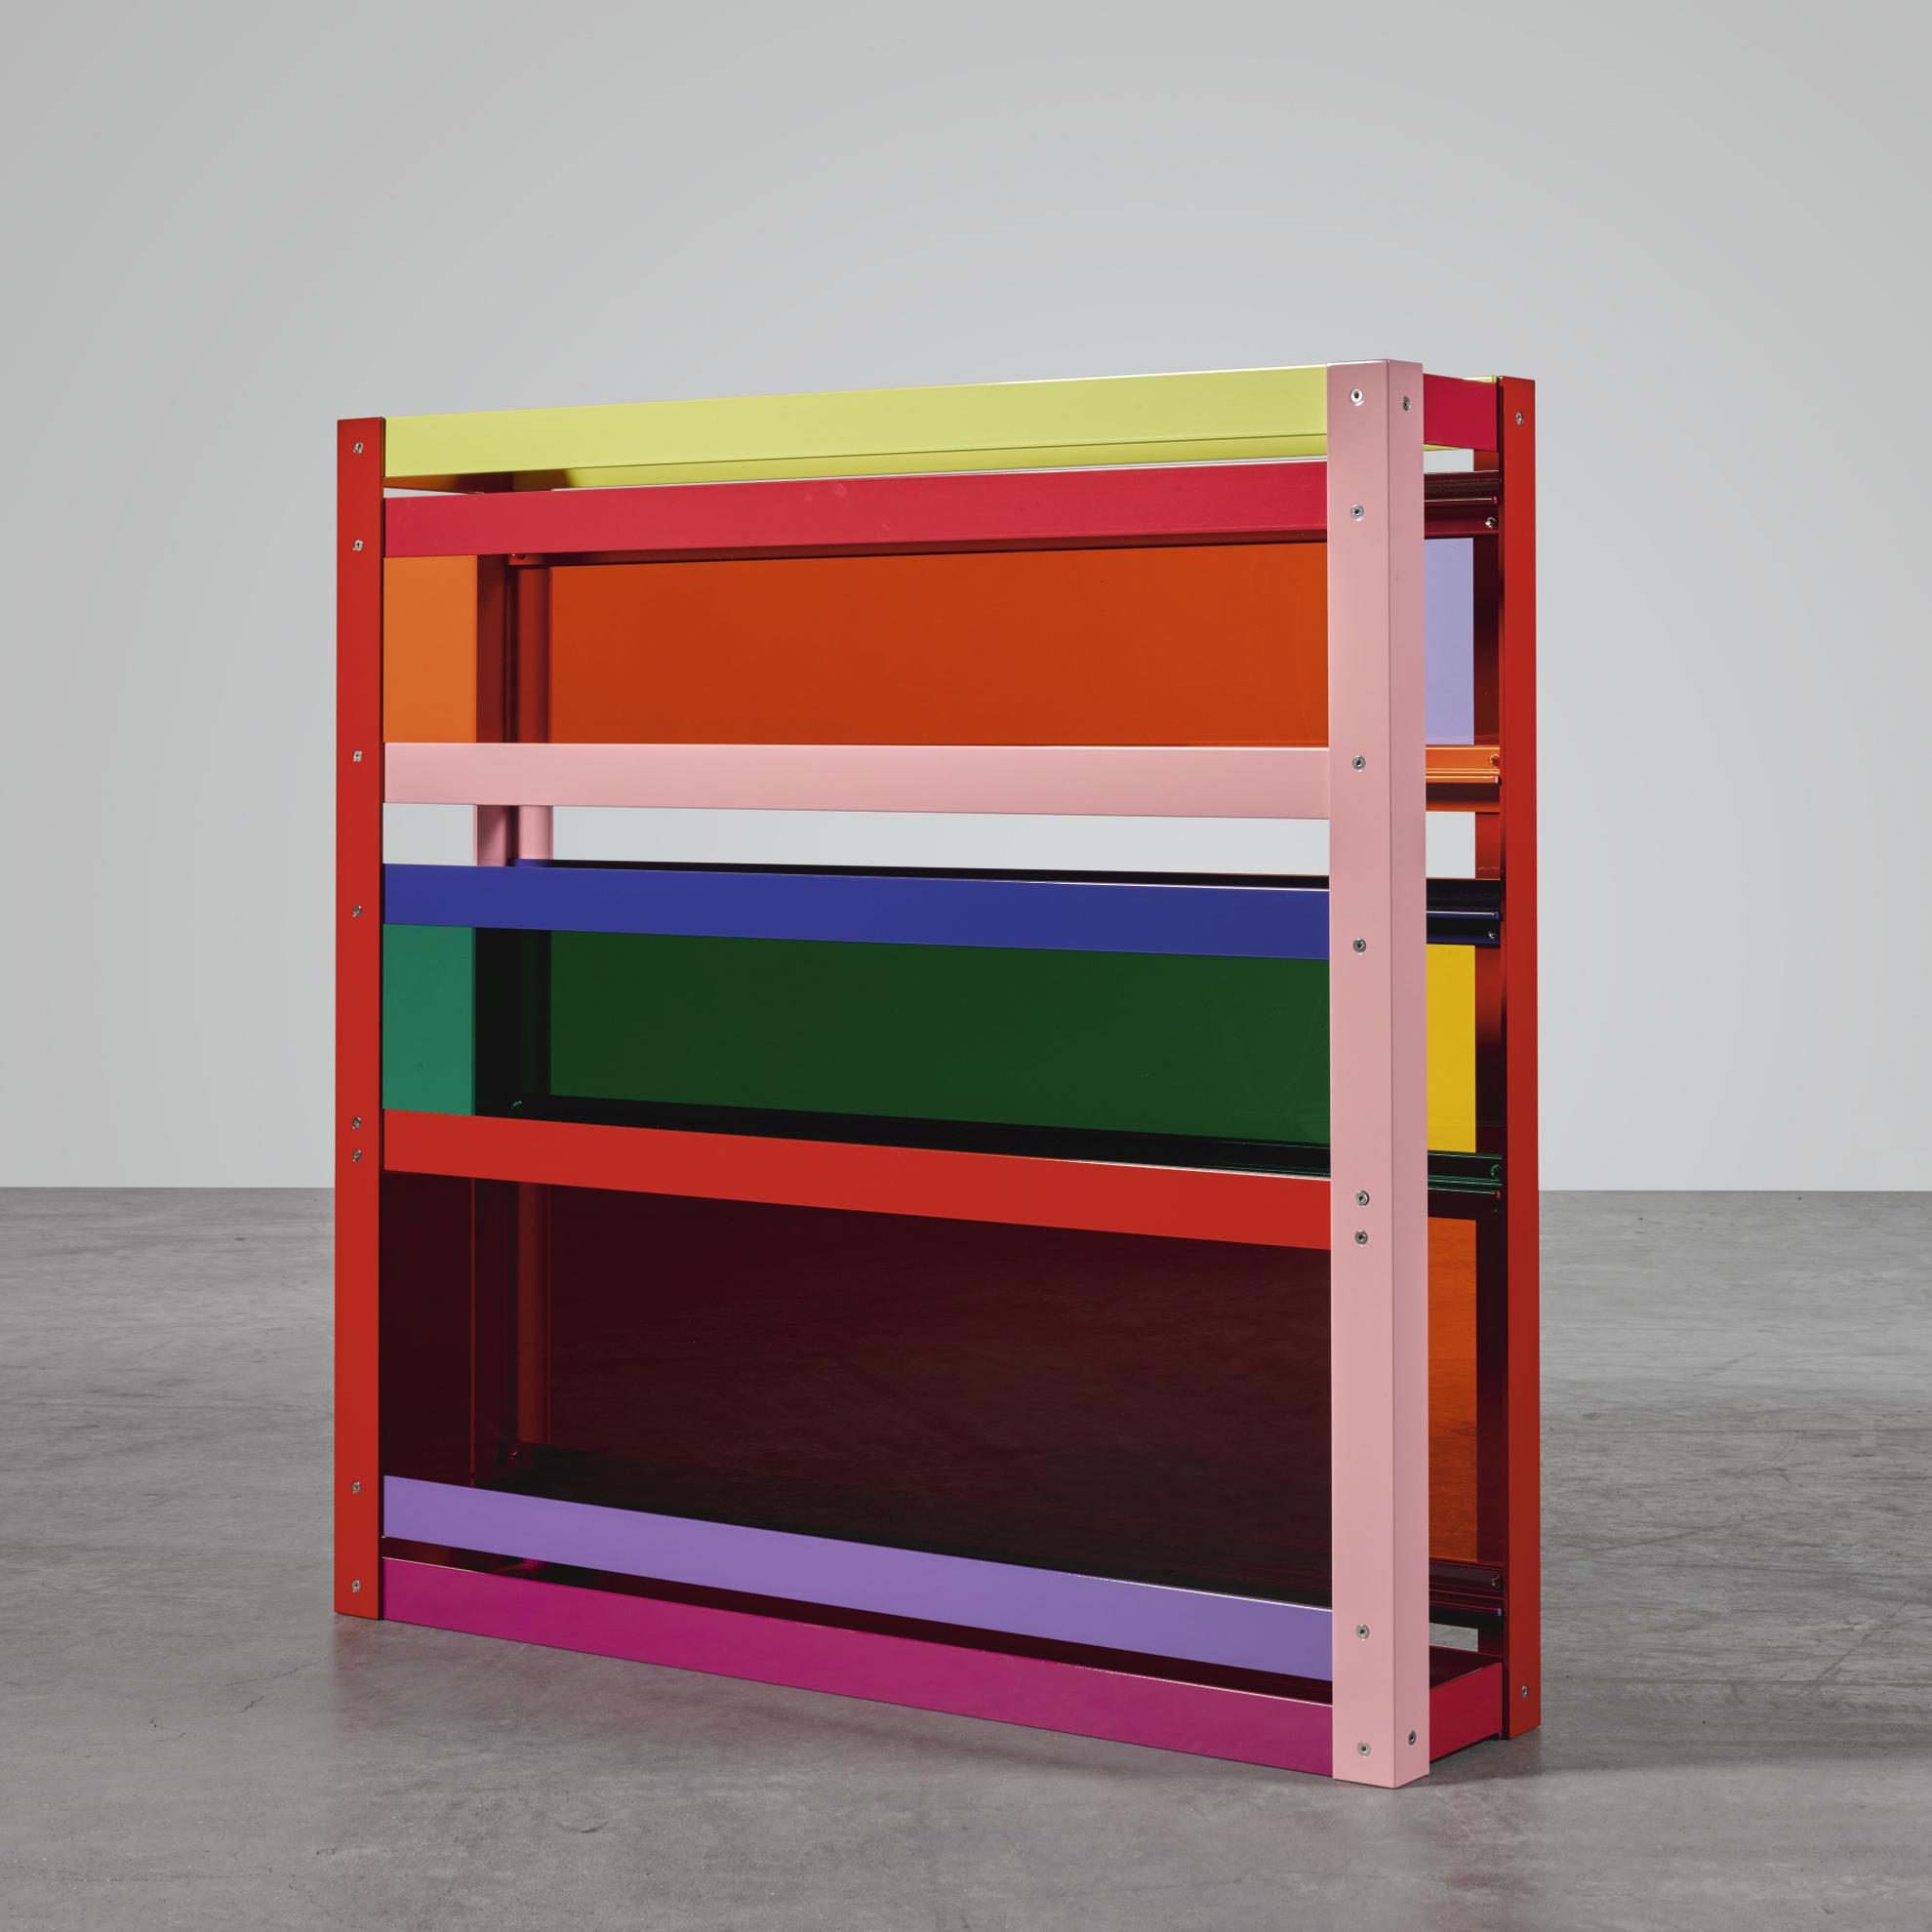 Liam Gillick-Wandered Out-2010